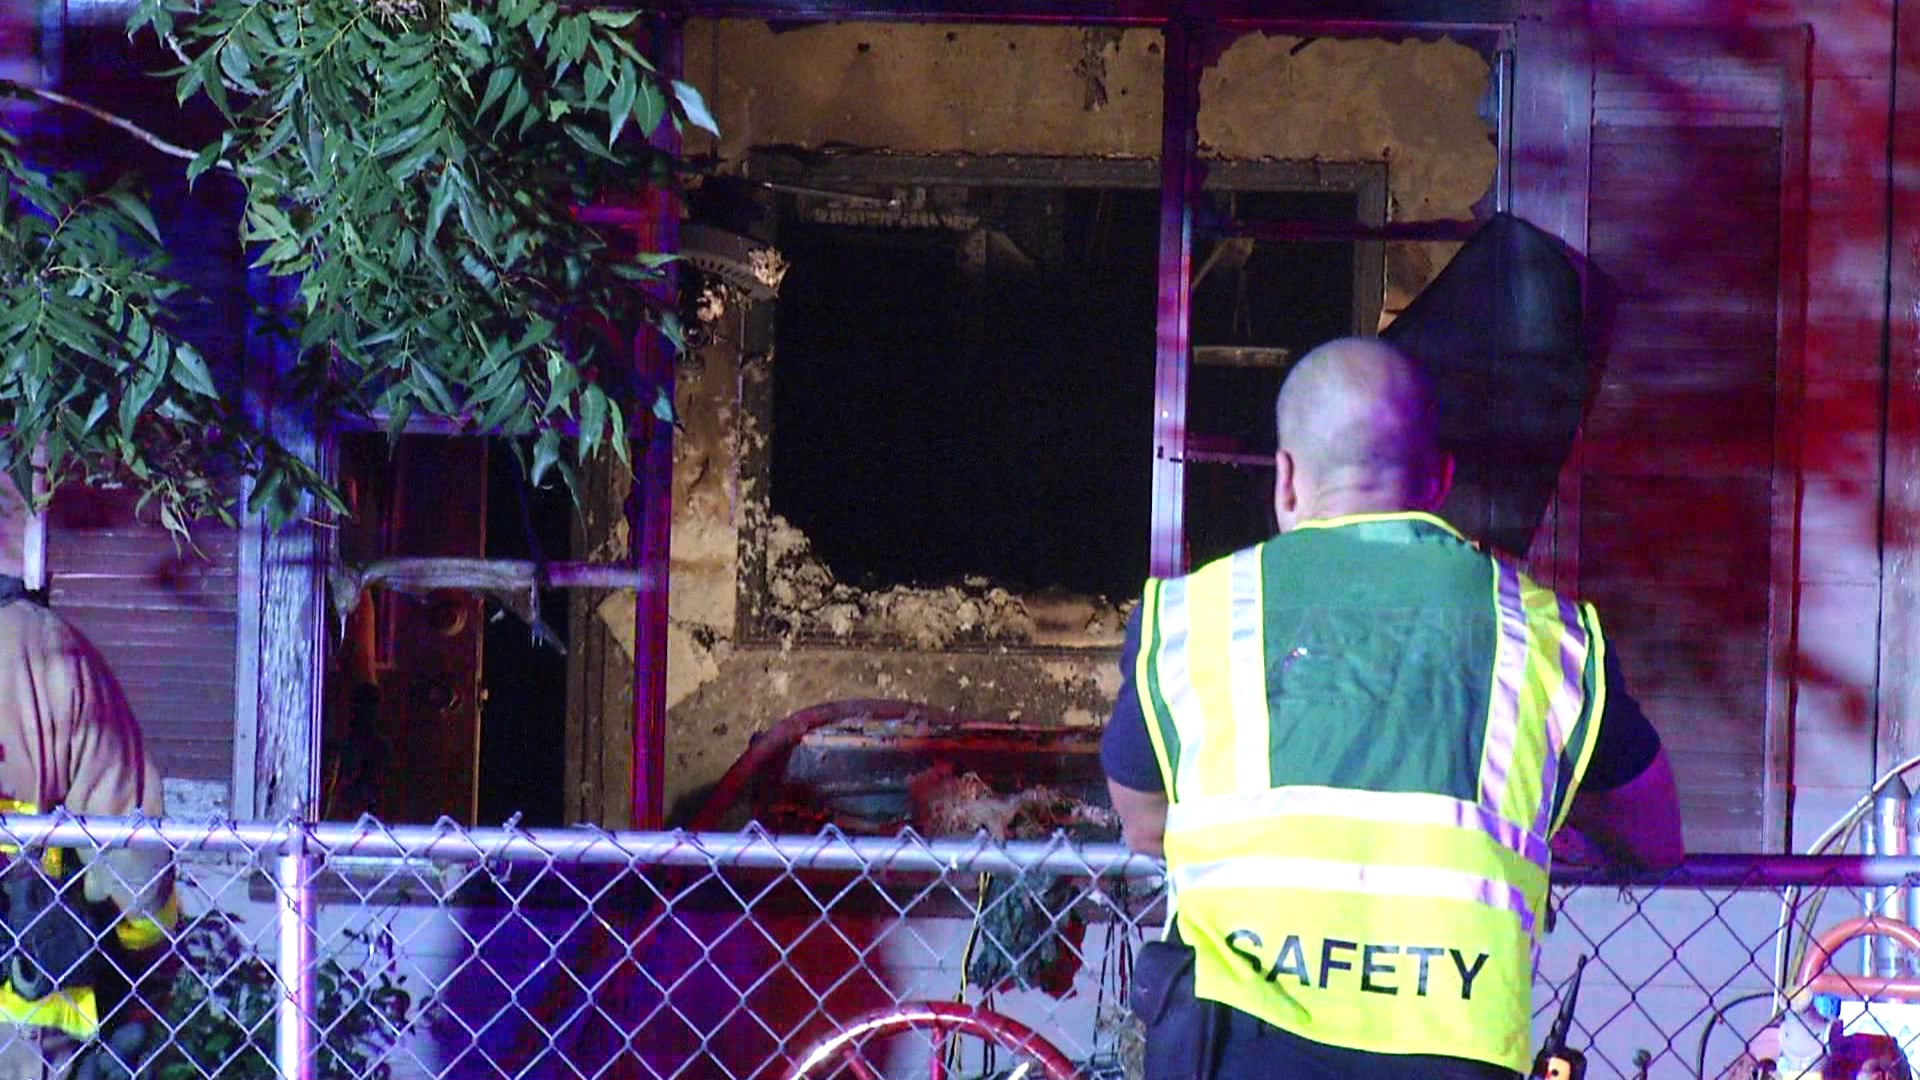 Firefighters return to San Antonio home after fire rekindles